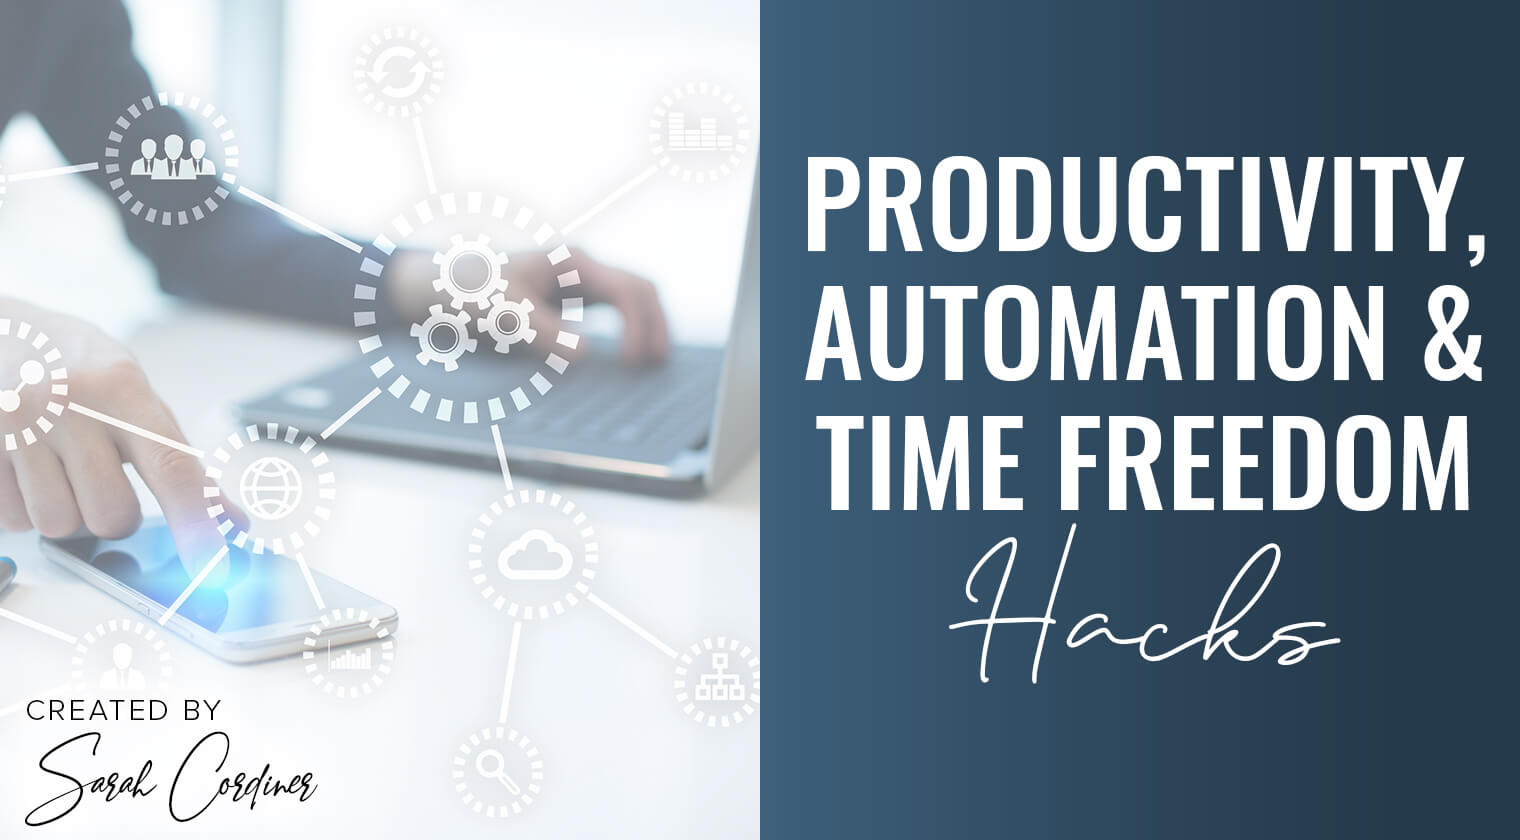 Productivity, Automation and Time Freedom Hacks